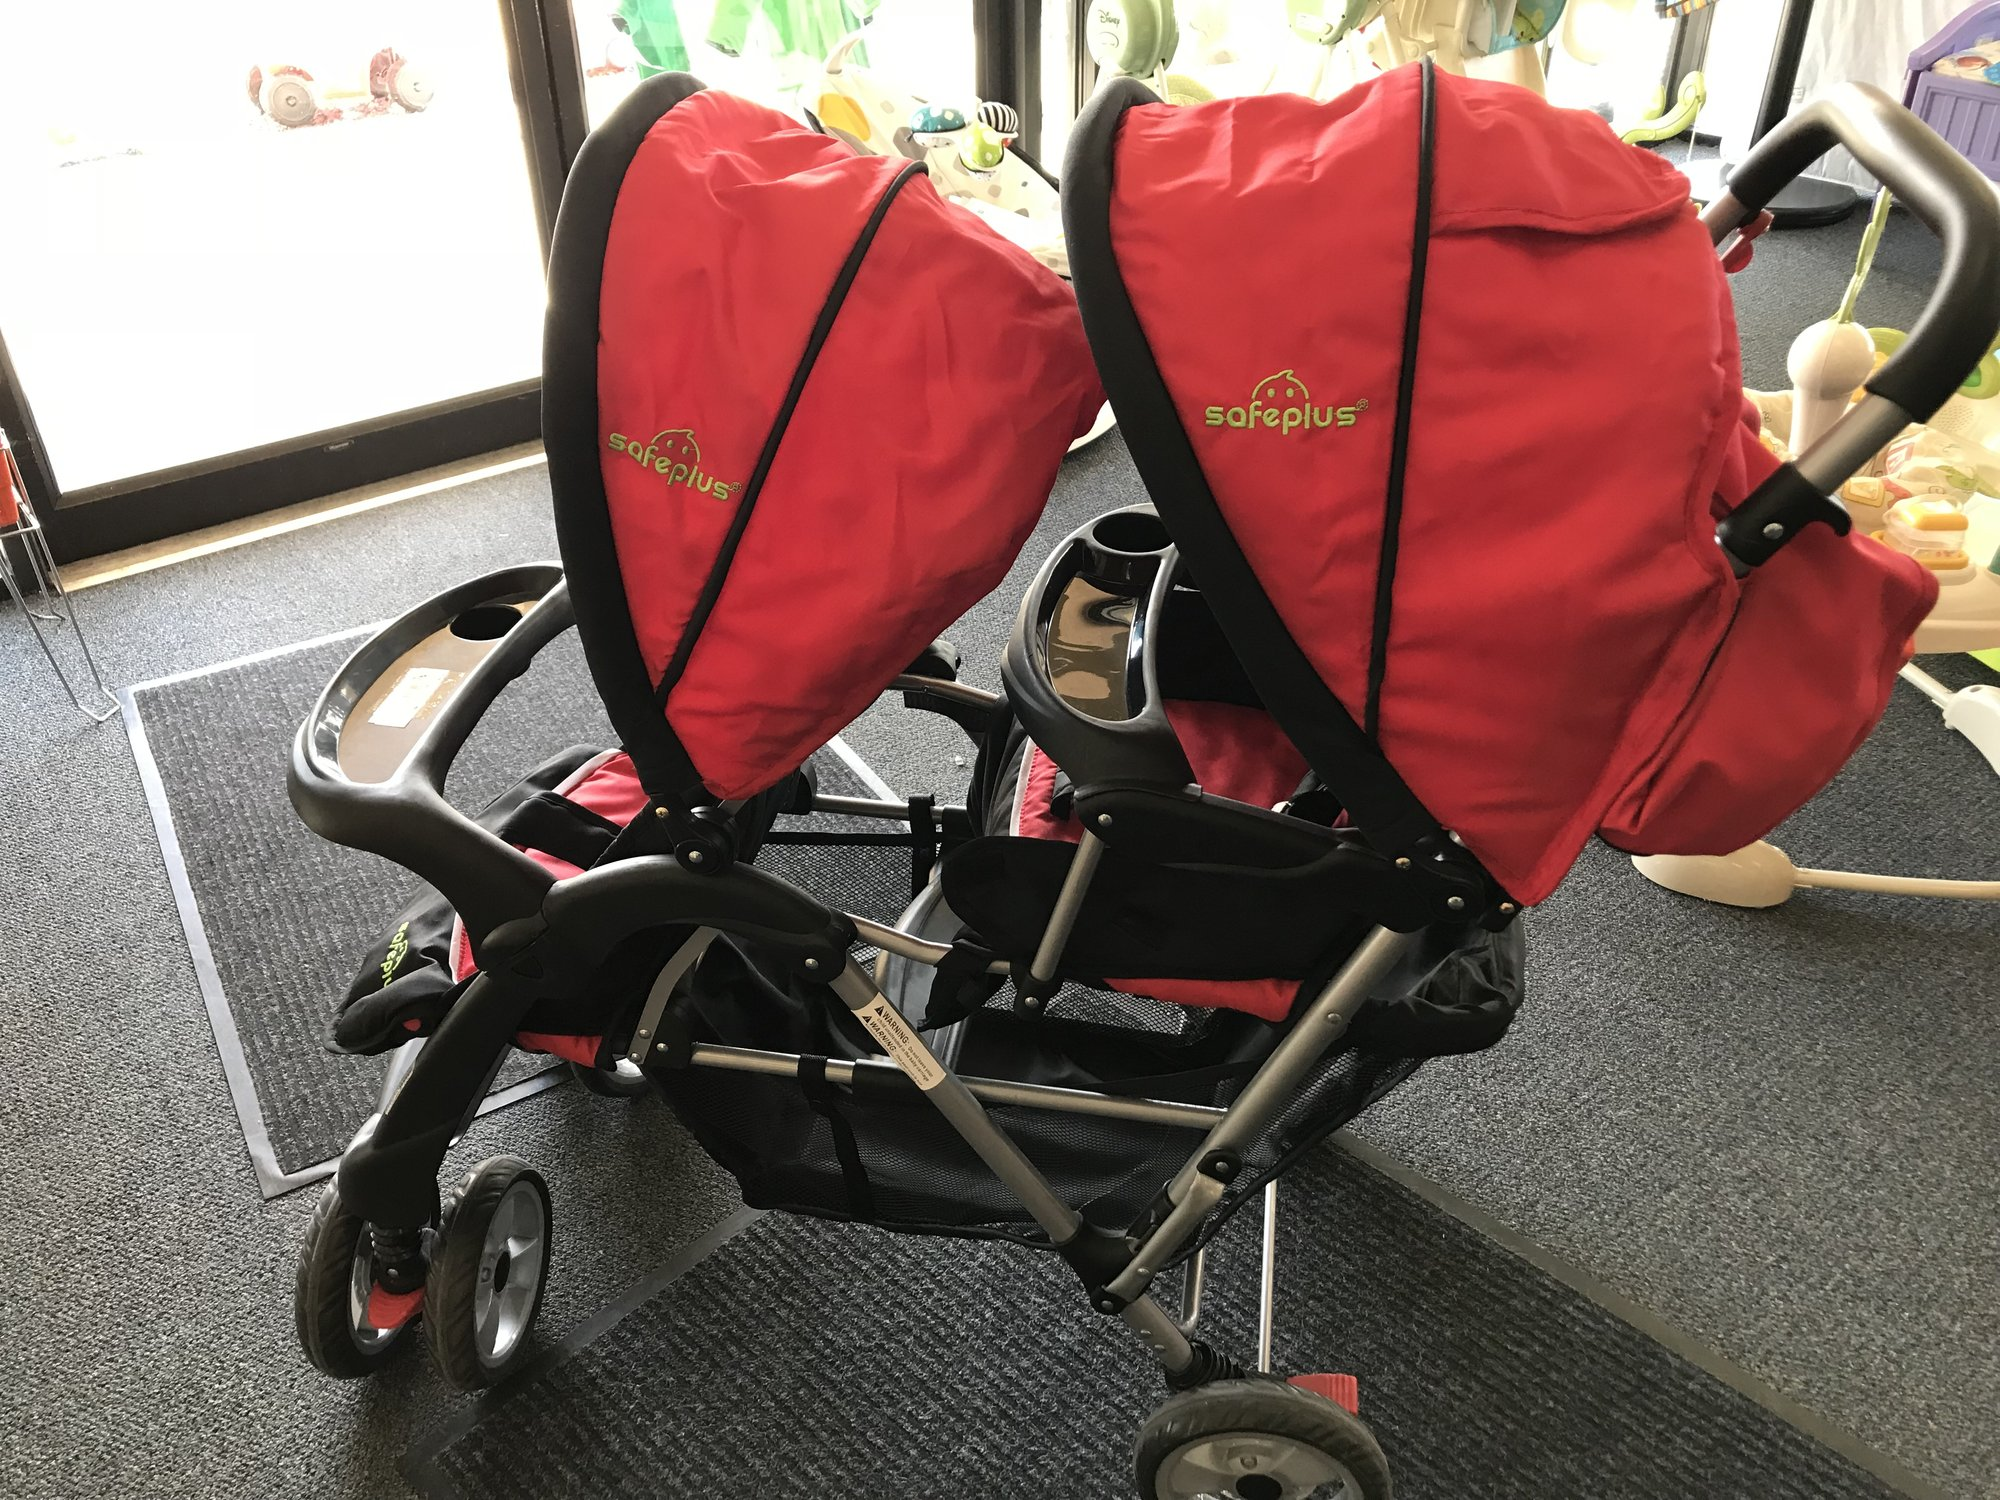 SafePlus barnd double stroller in excellent condition, looks ike it was barely used.  Has reclining seats and double canopies.  NO SHIPPING-in store pick up only